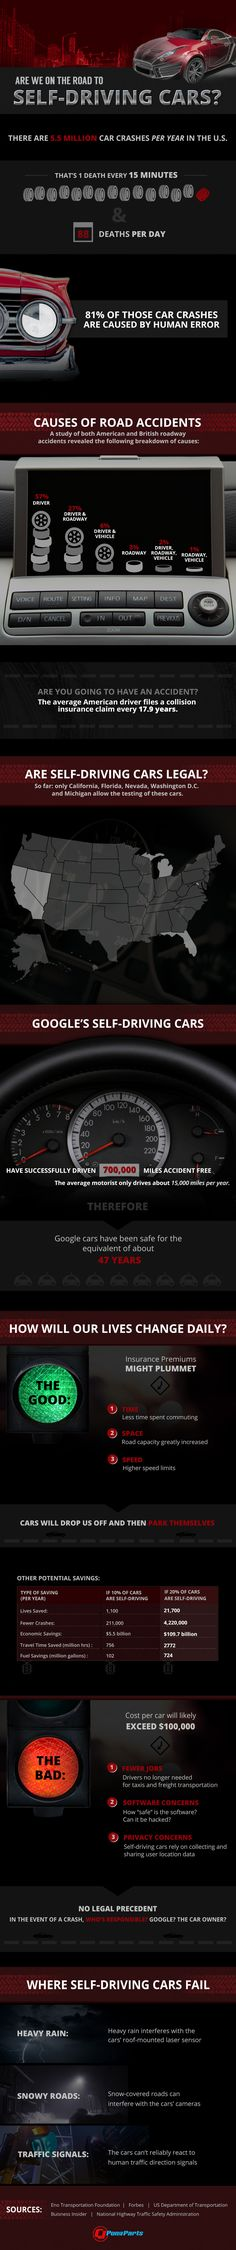 Are We On The Road to Self-Driving Cars?   #infographic #Cars #technology